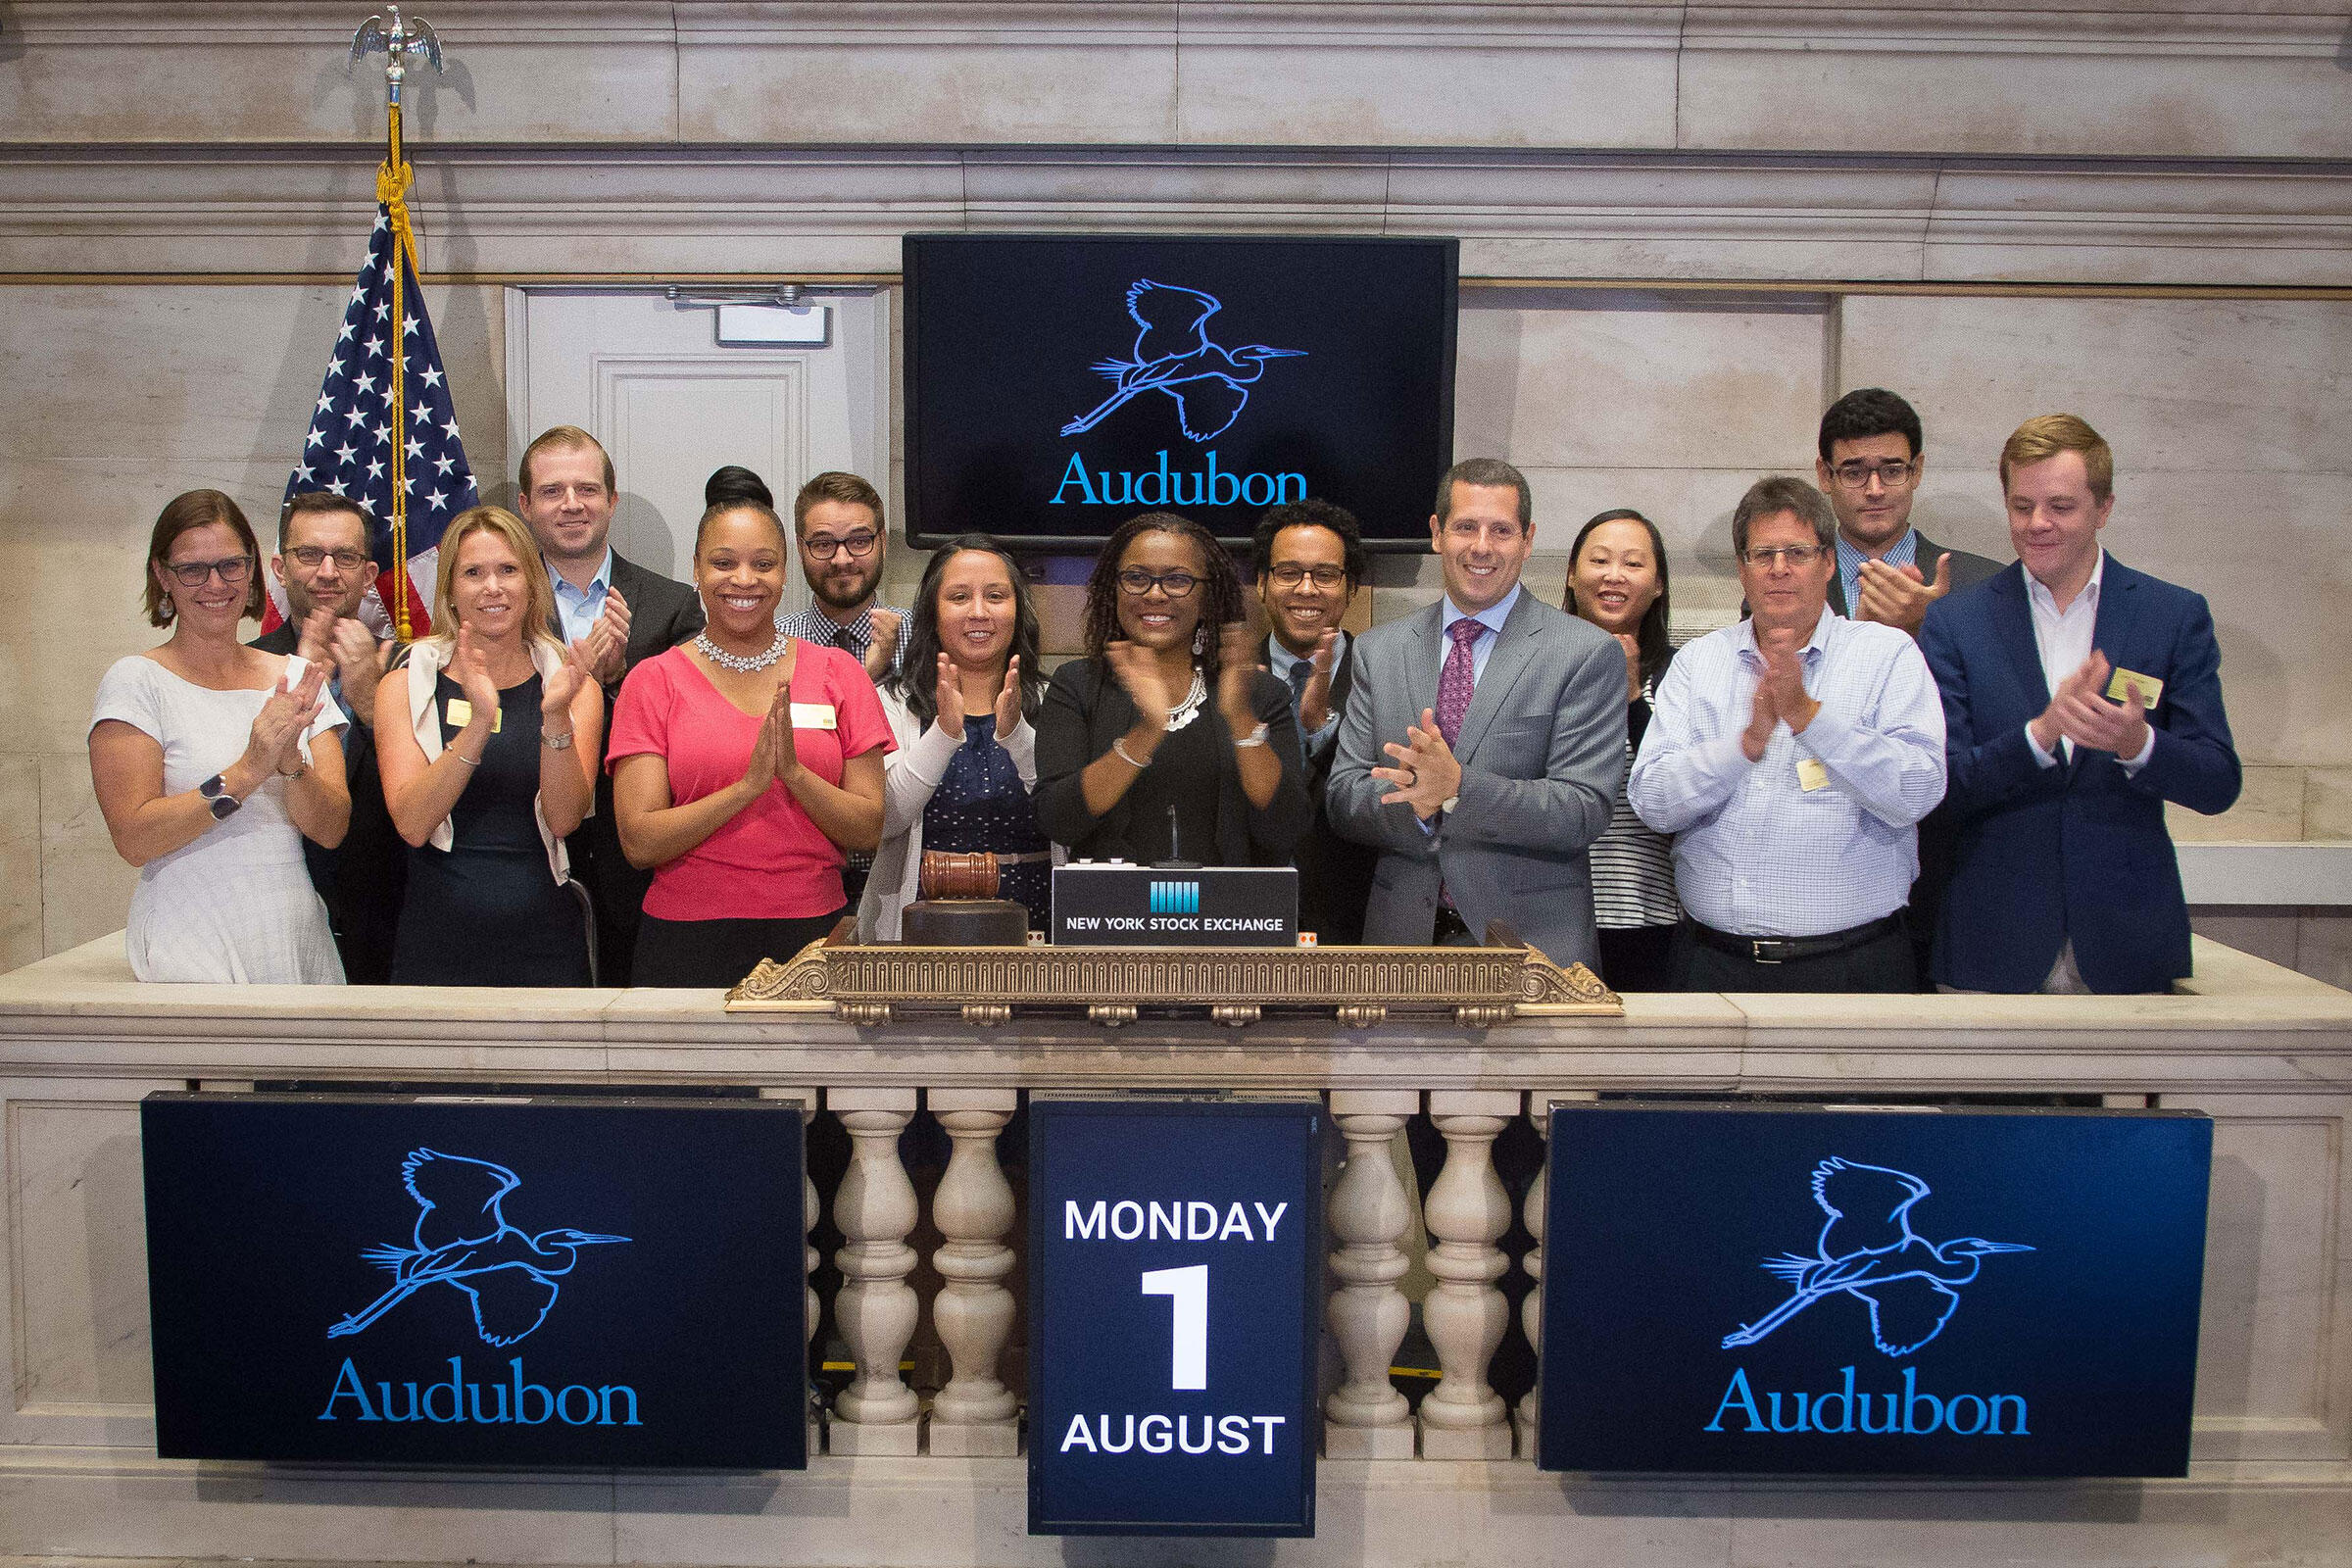 Ringing the opening bell at the New York Stock Exchange. NYSE/Valerie Caviness